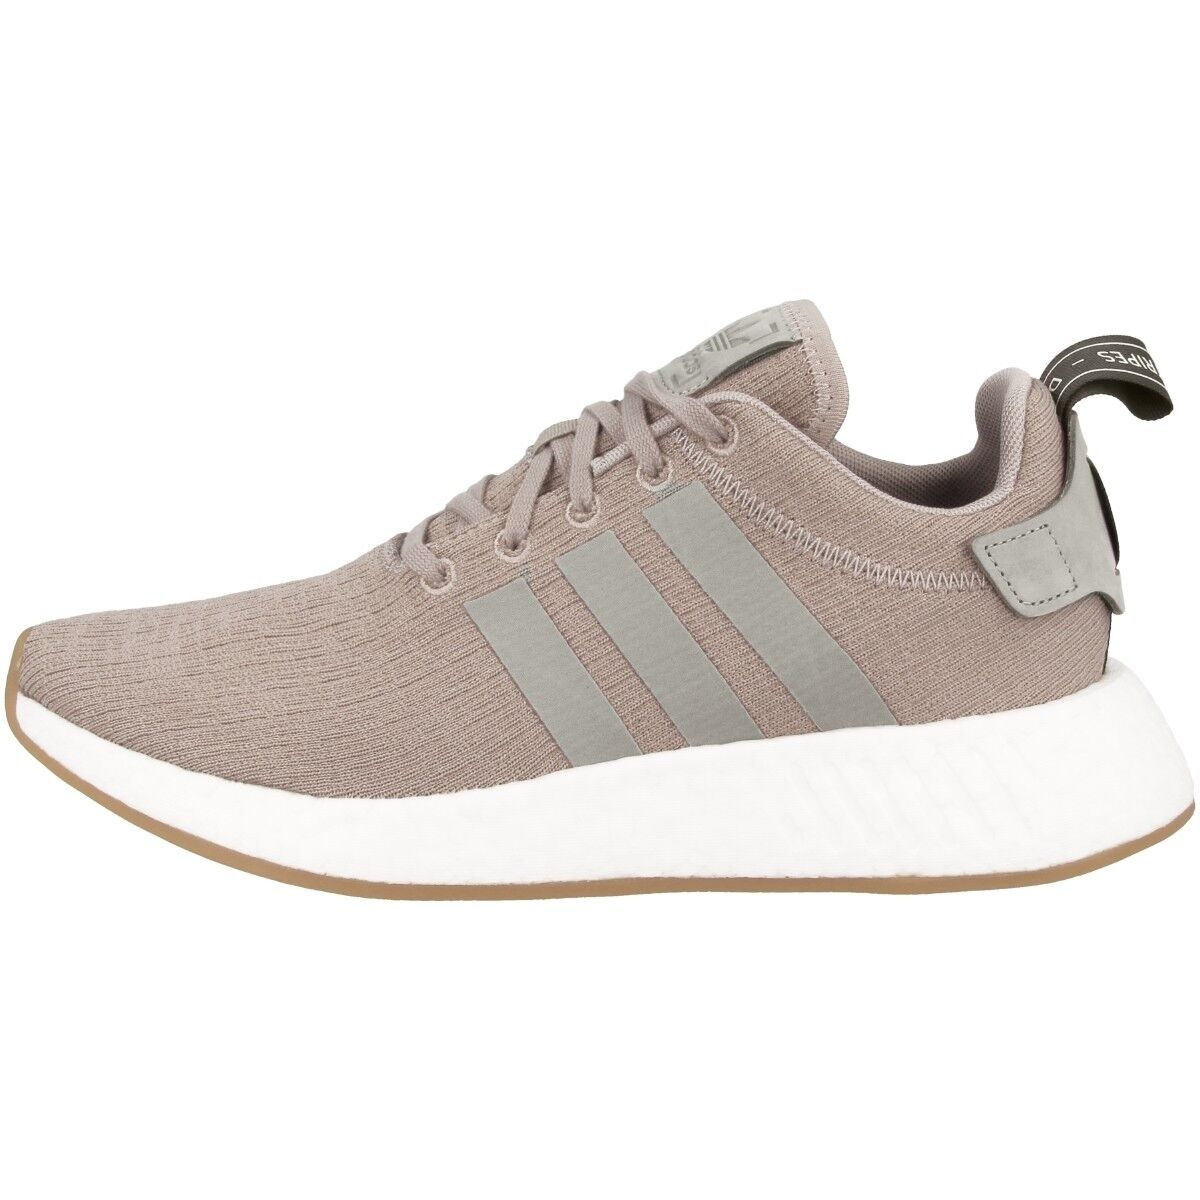 Adidas nmd_r2 shoes Leisure Sneakers Trainers Sneakers Vapour Grey cq2399